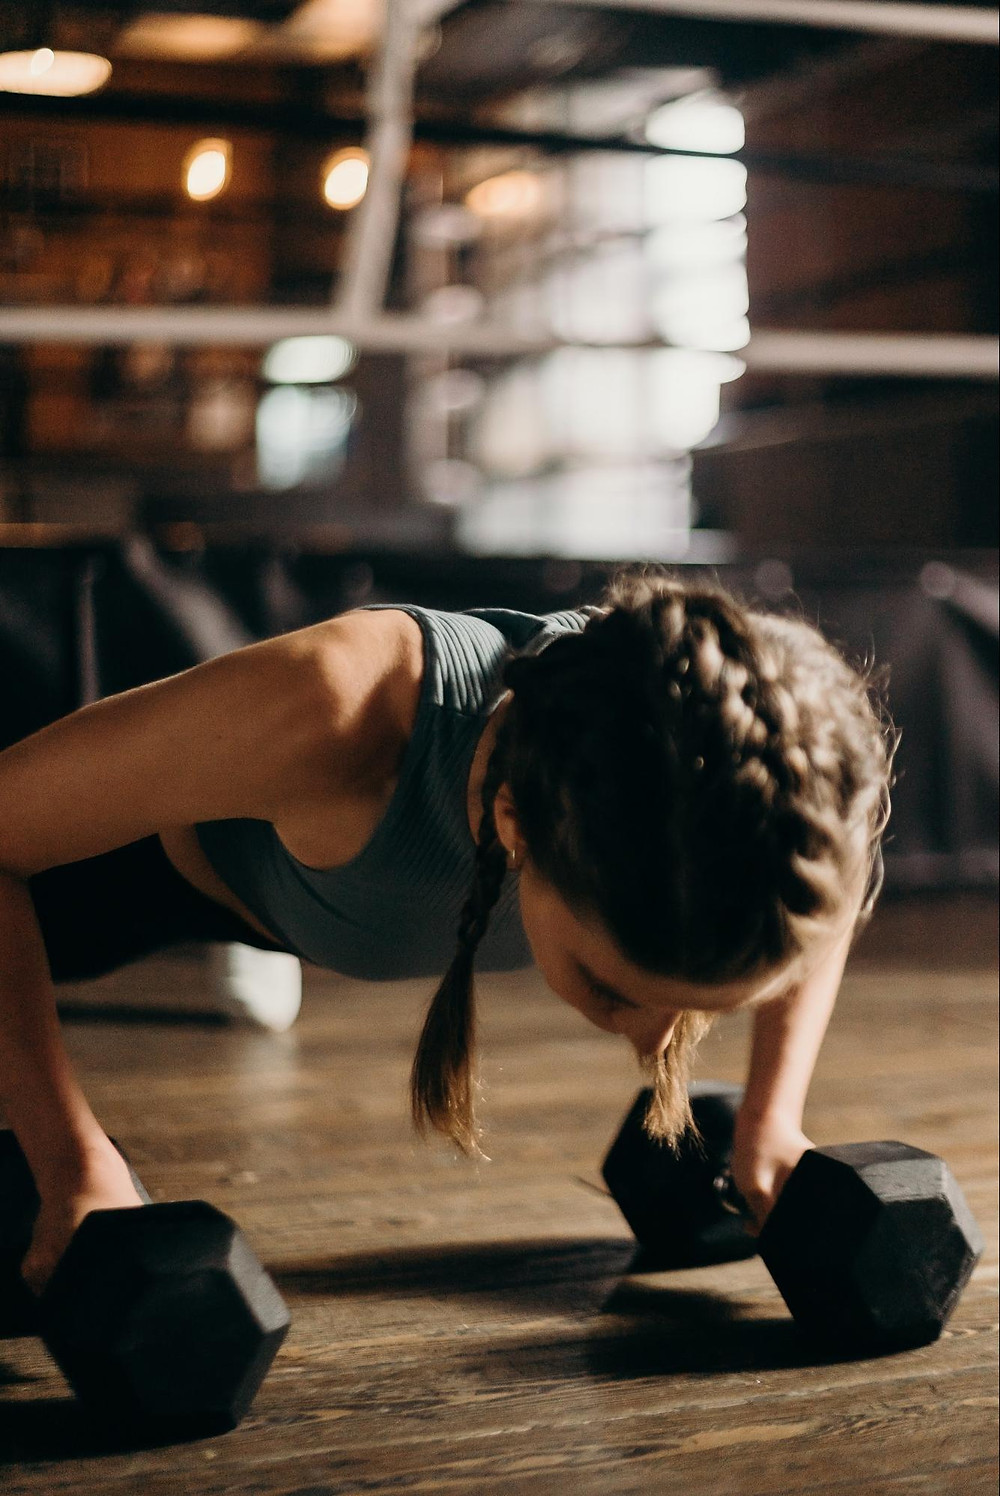 Woman doing a pushup with weights